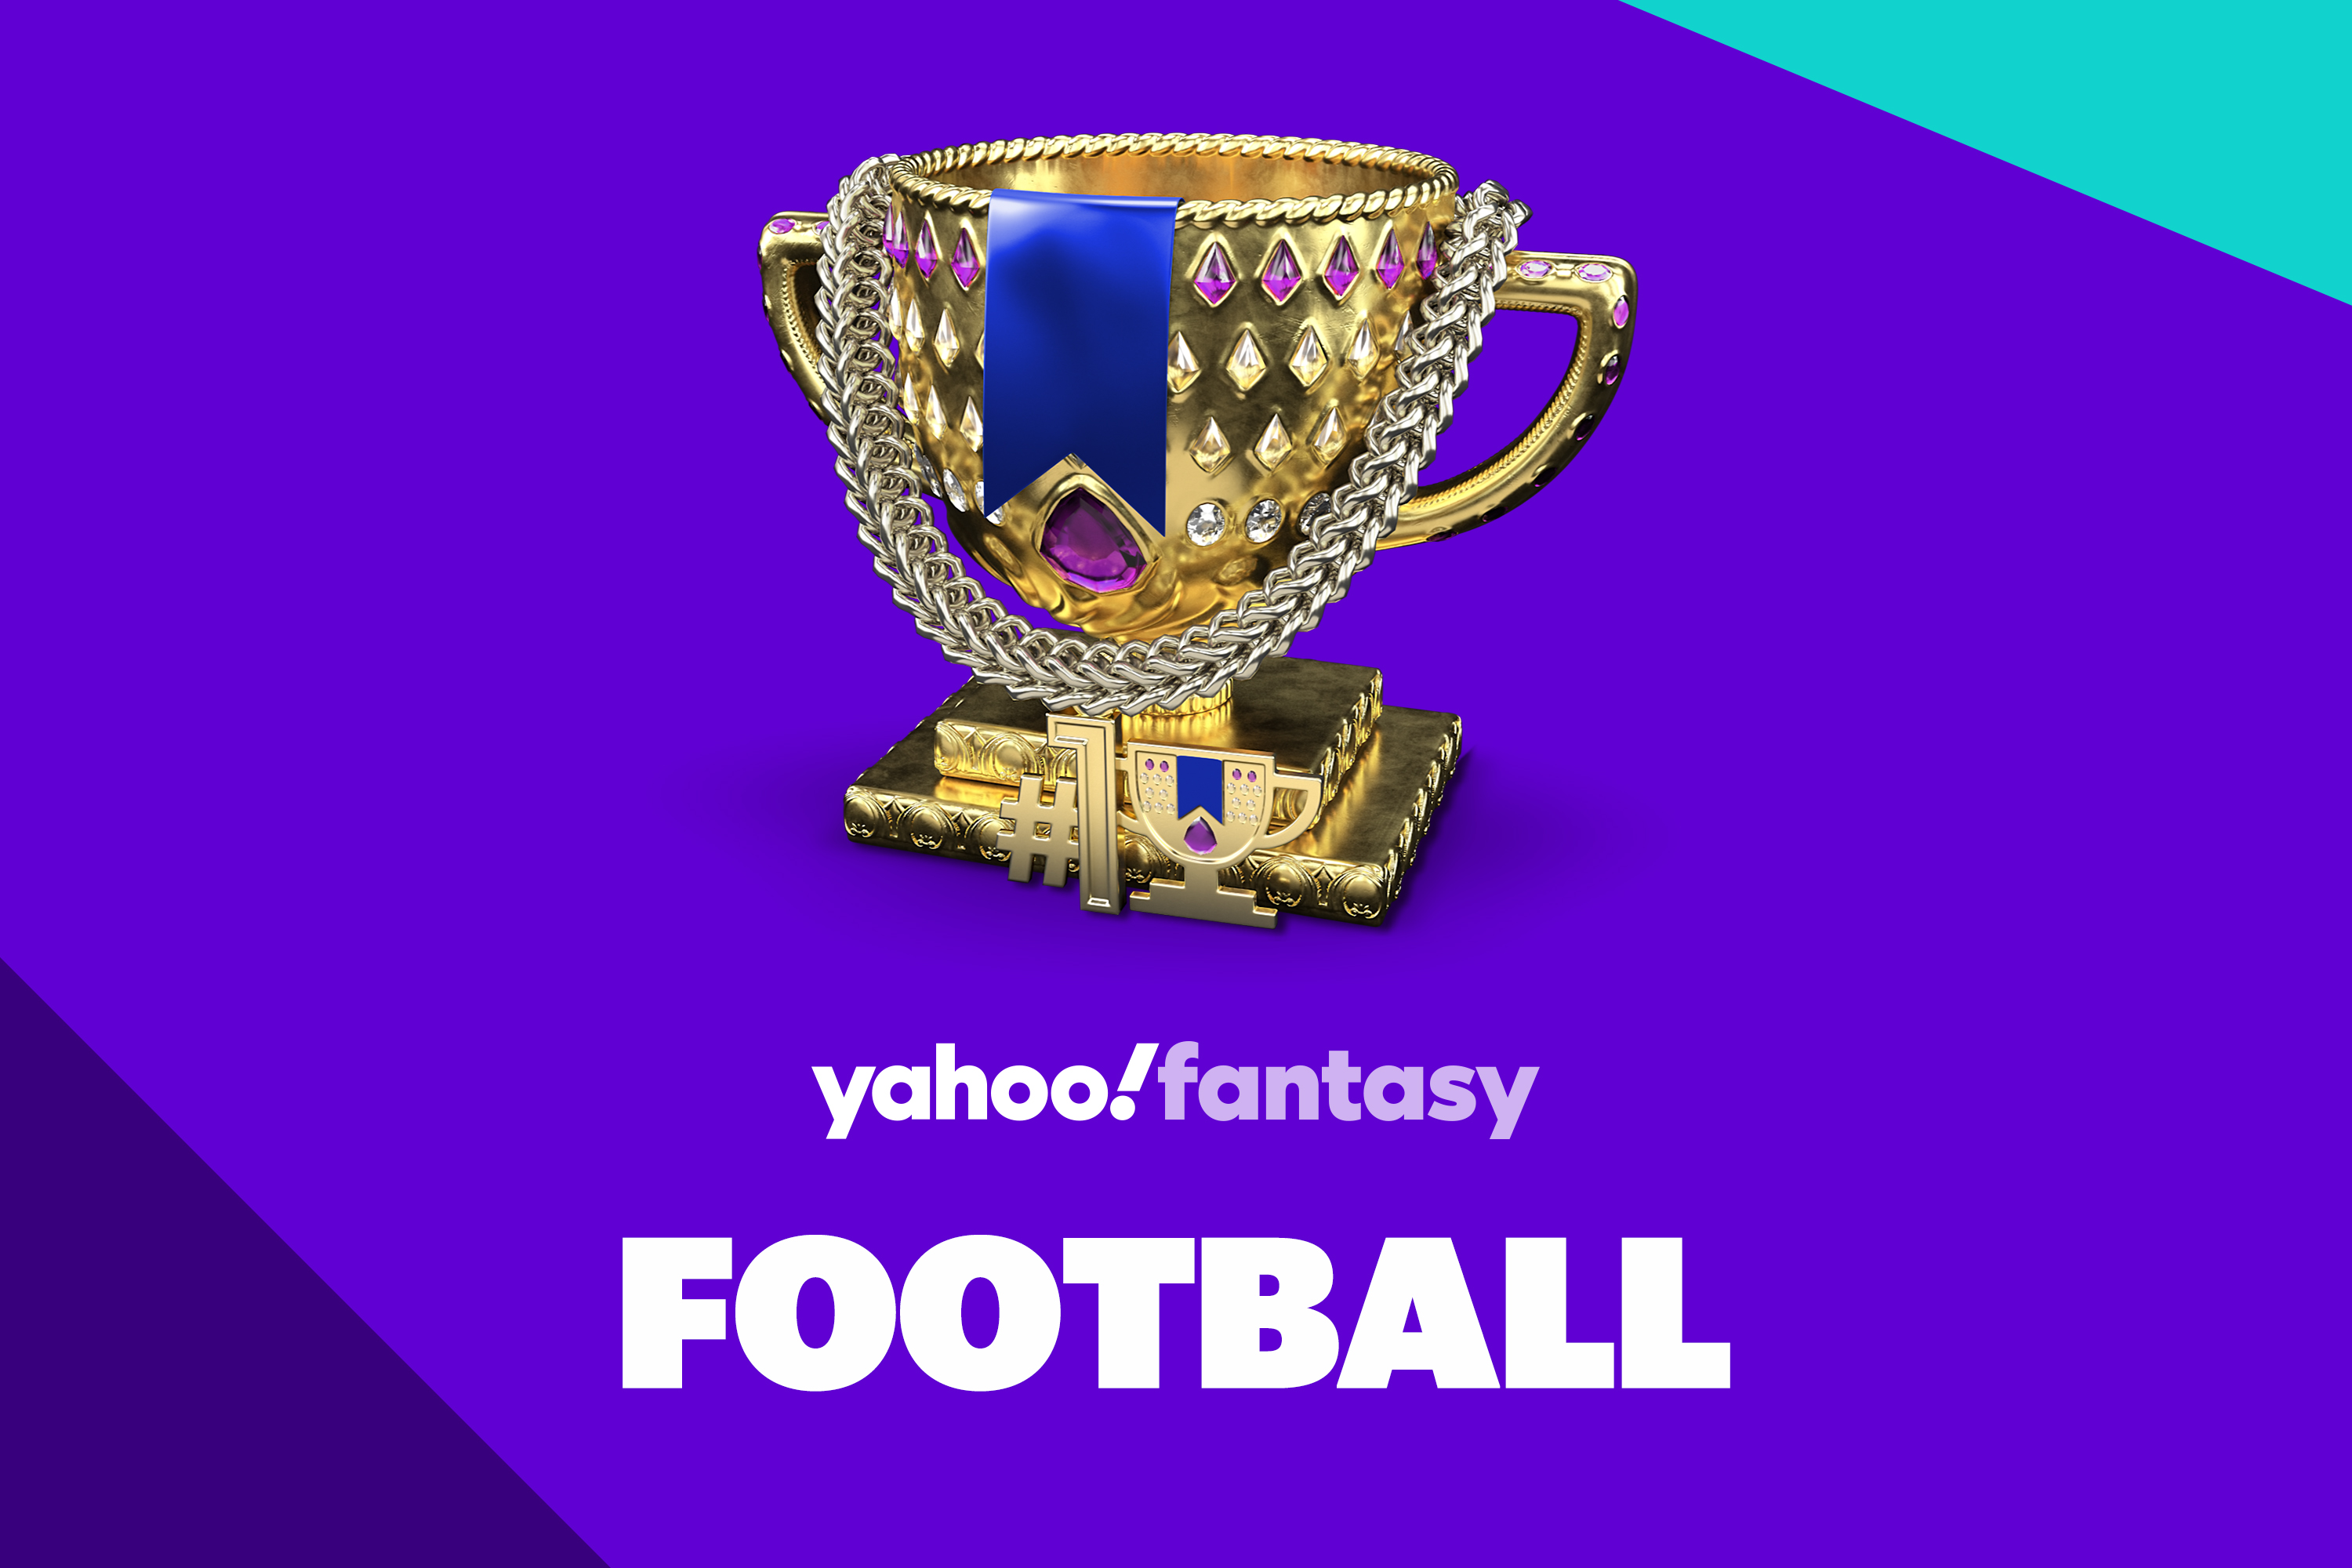 Yahoo Fantasy Football Open For 2020 Nfl Season Sign Up To Play